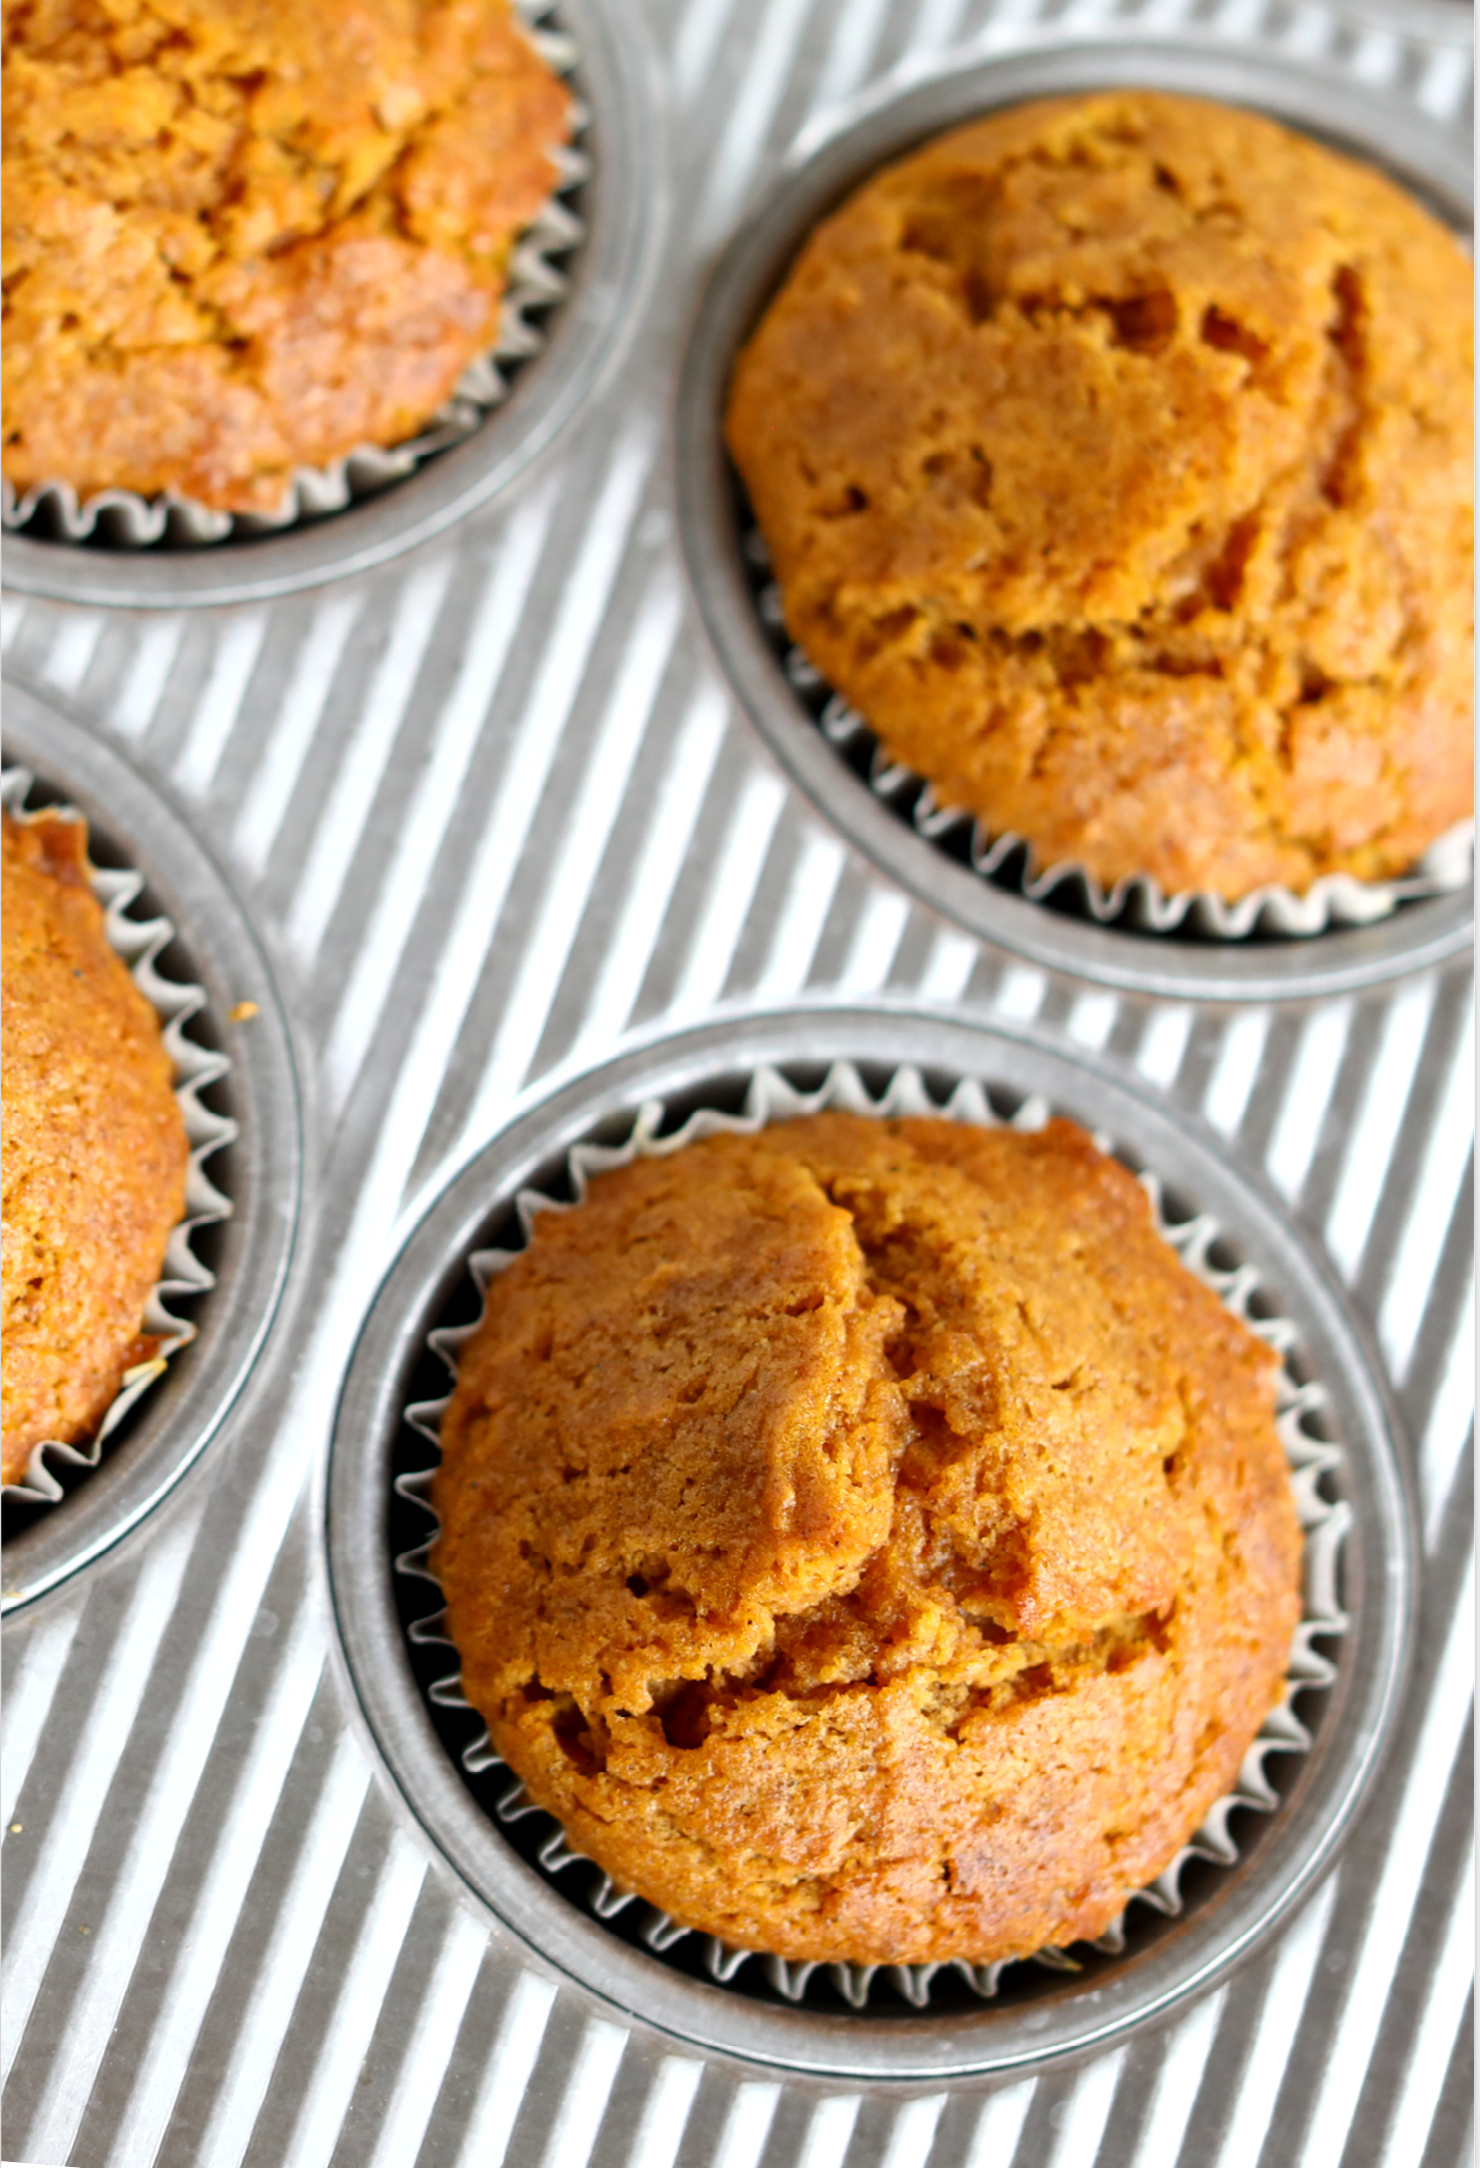 Perfect Fall Pumpkin Muffin Recipe! #pumpkinmuffins